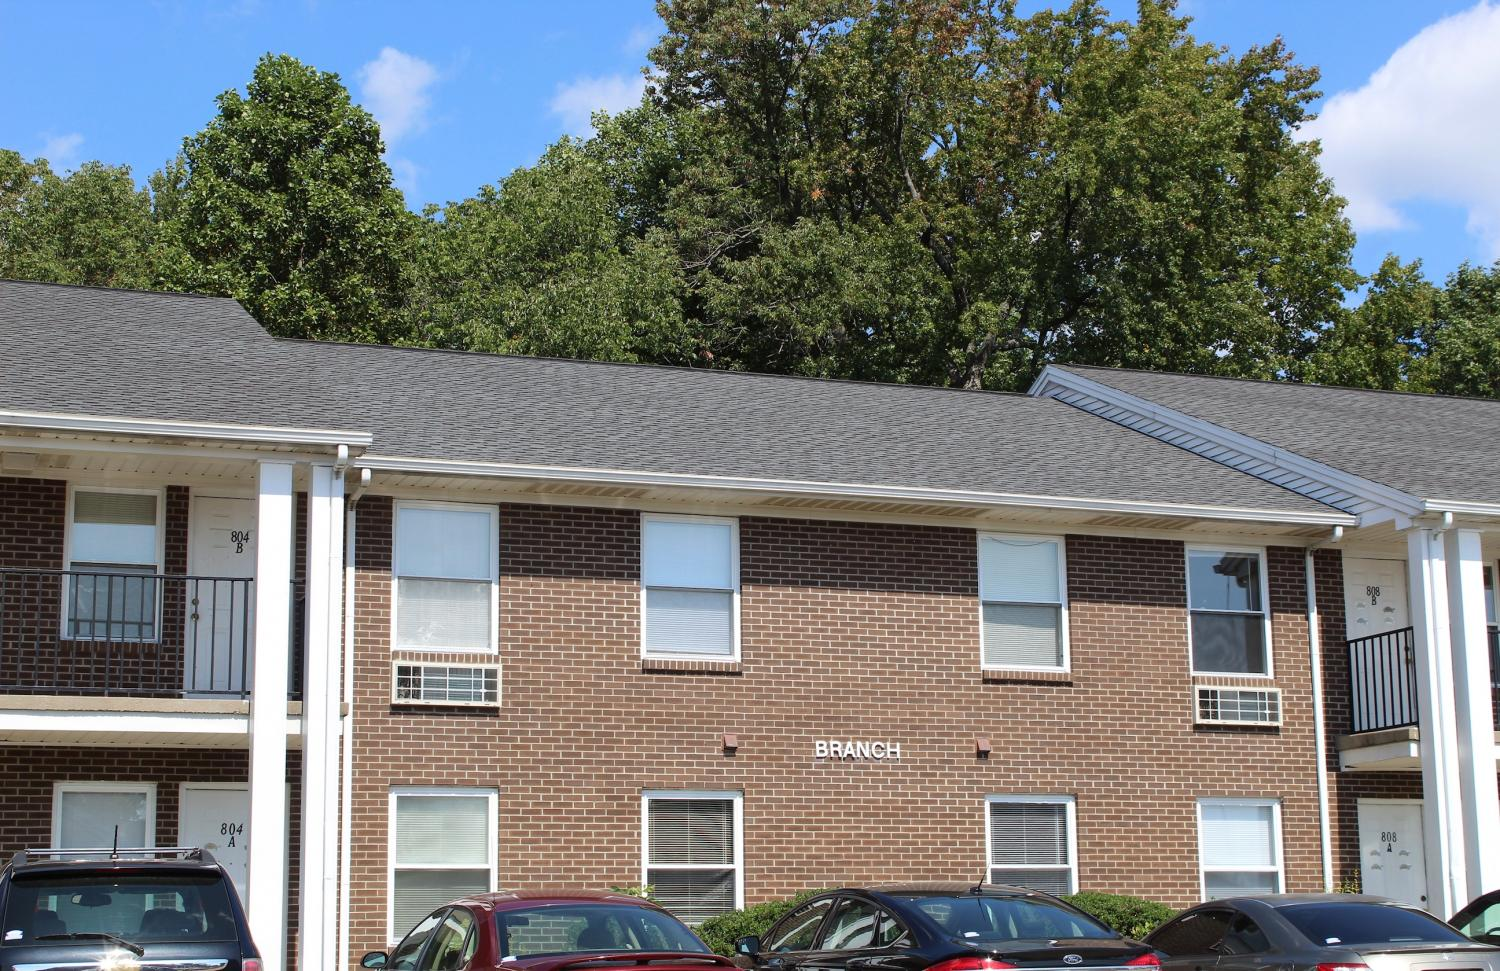 The Student Housing Association (SHA) is considering a recommendation to the university administration that would change the current overnight visitation policy.